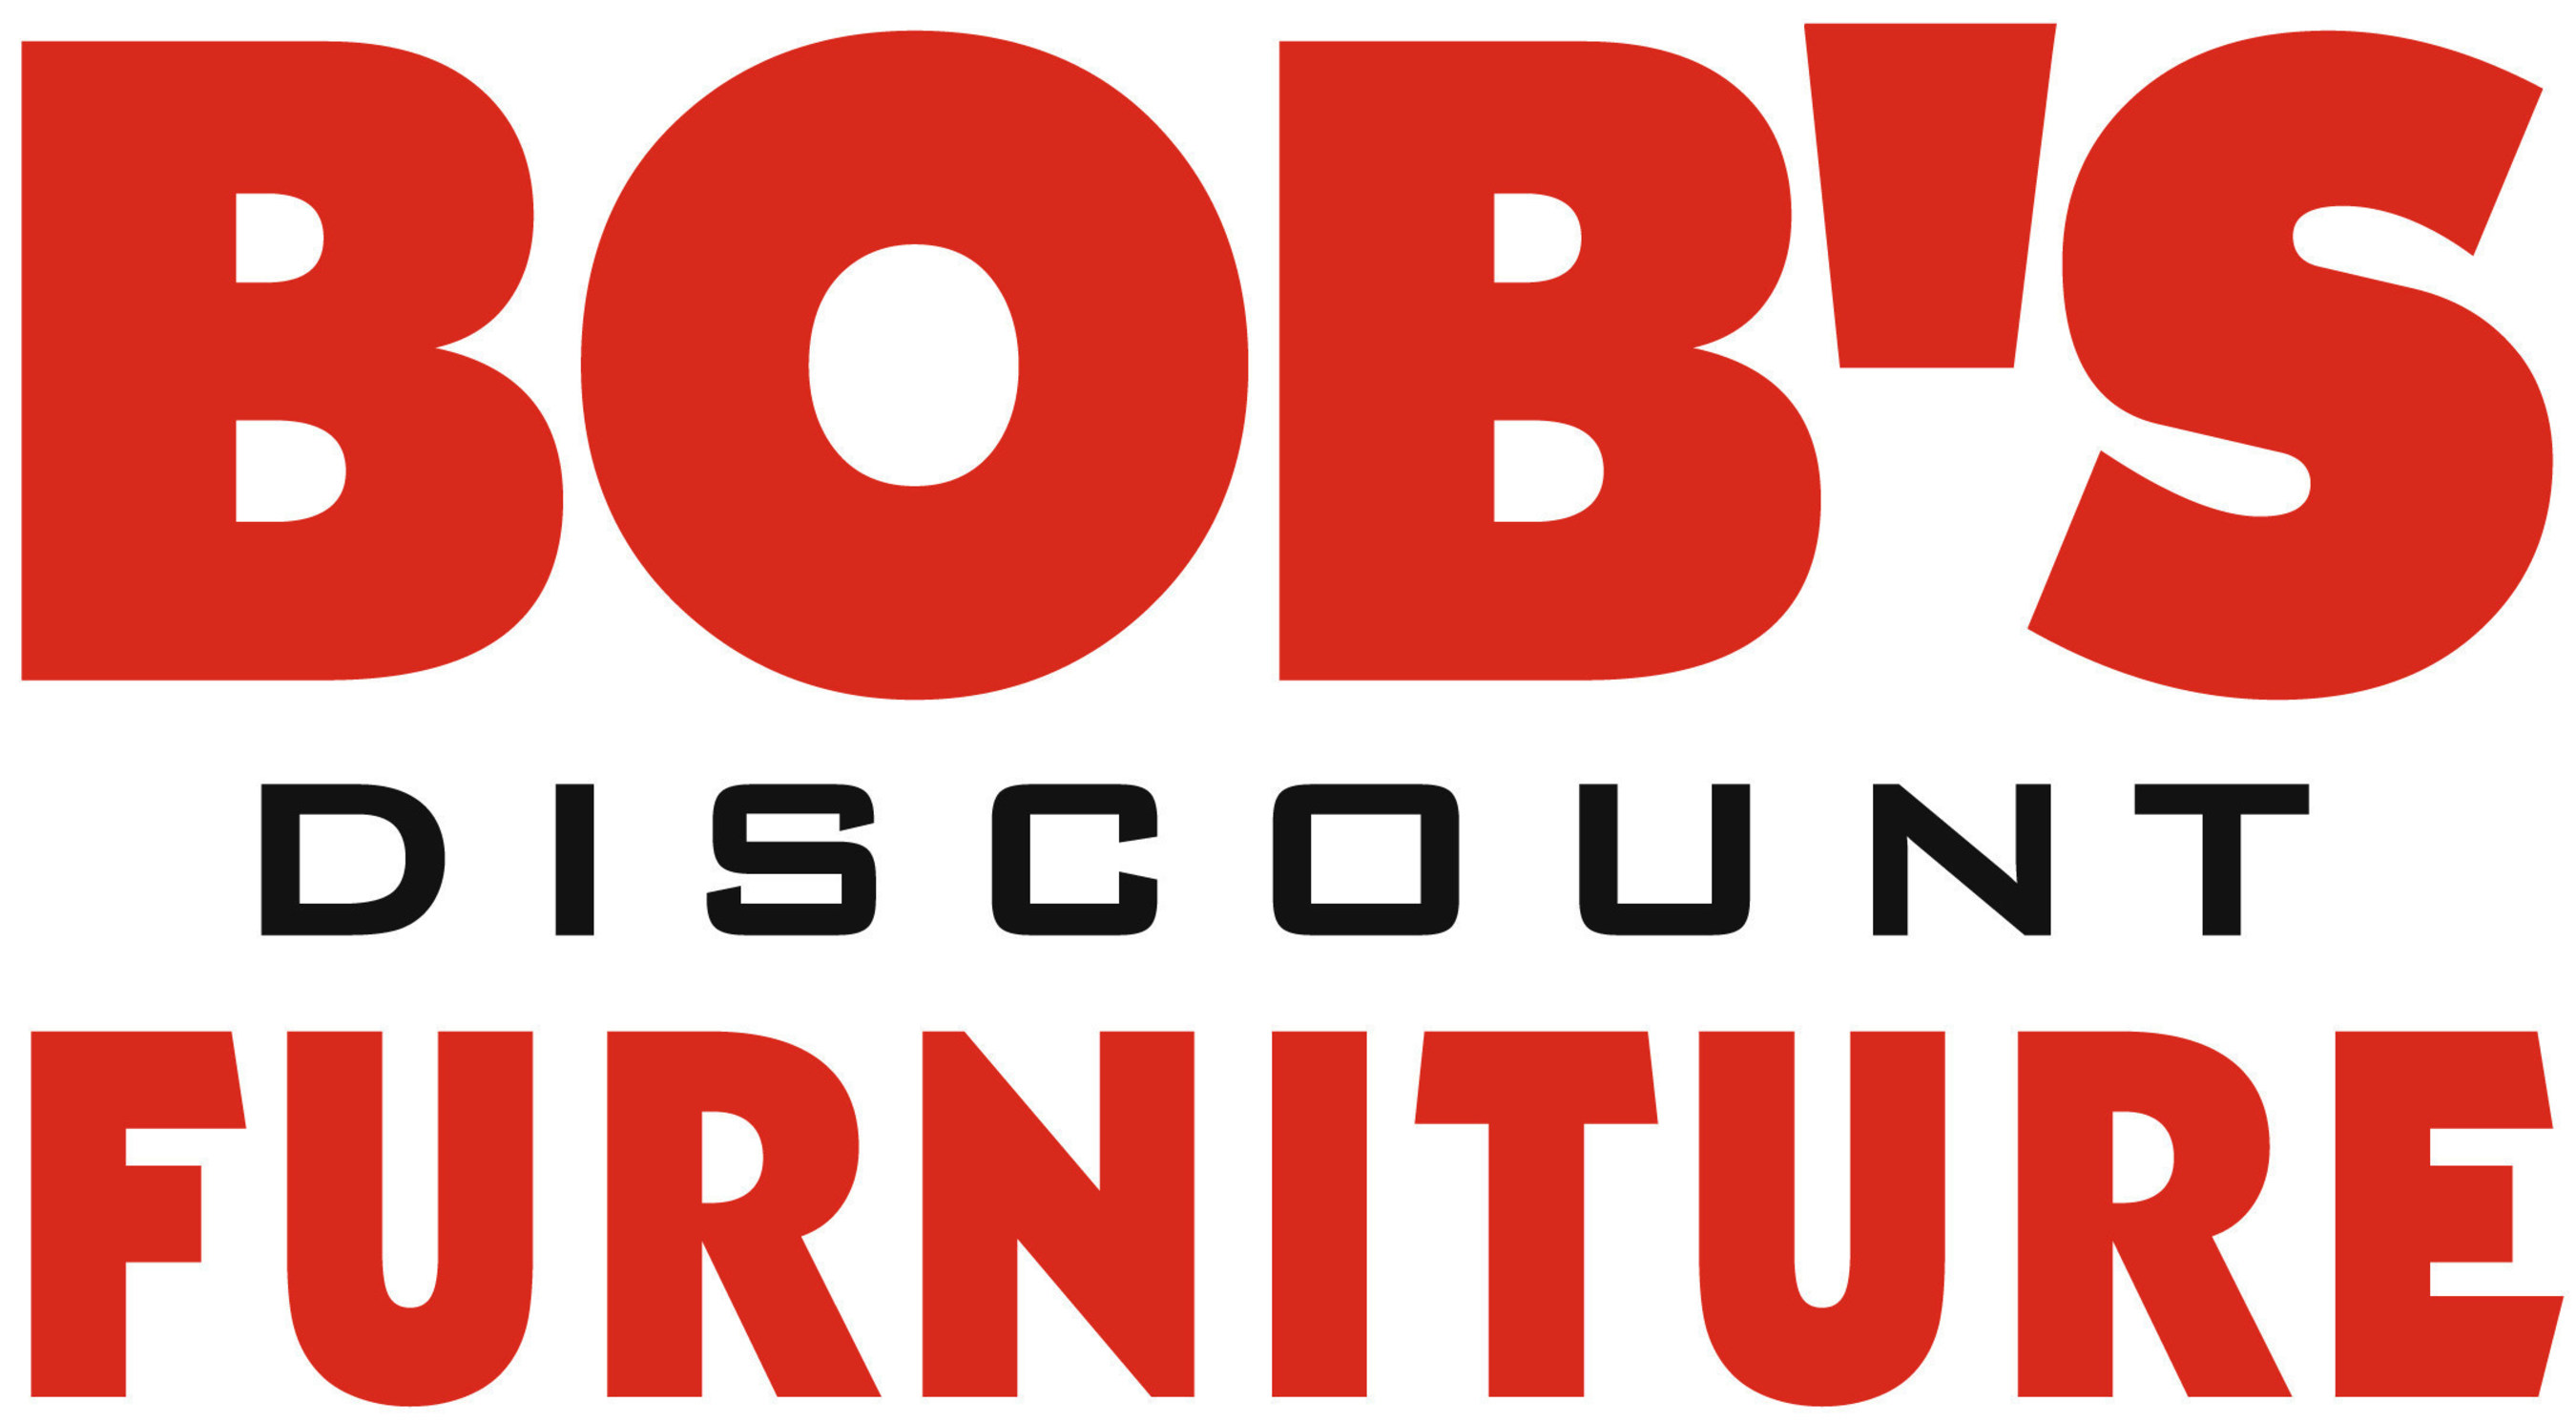 Bobu0027s Discount Furniture Company Logo.